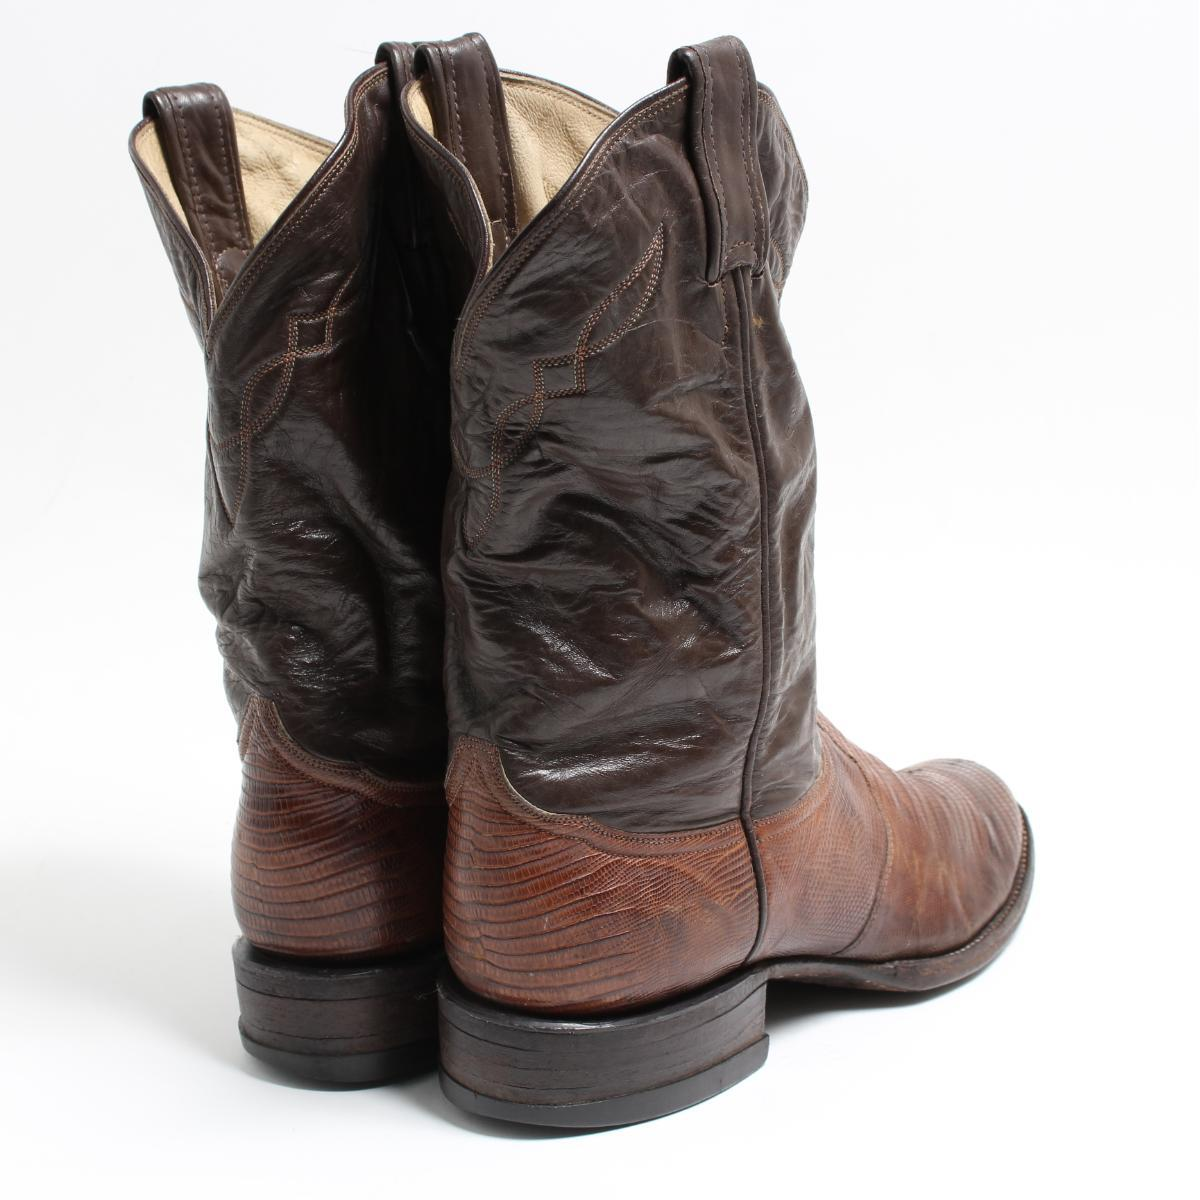 a3c8ec0f311 Tony llama Tony Lama gold label lizard leather western boots 8D men 26.5cm  vintage /bon6421